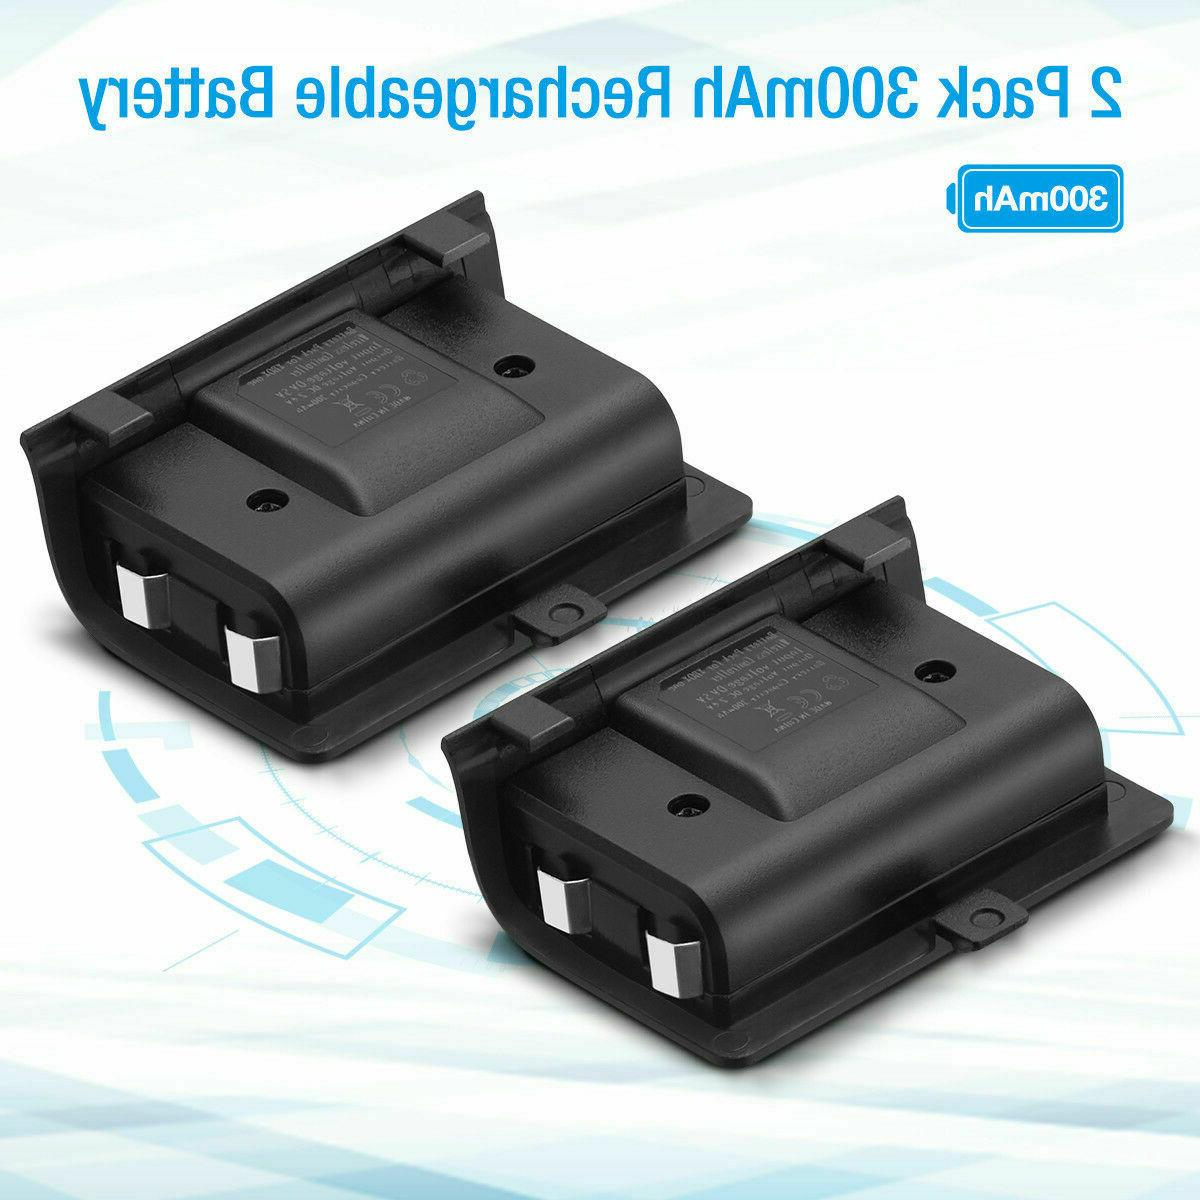 For Dual Charging Dock Charger Rechargeable Battery